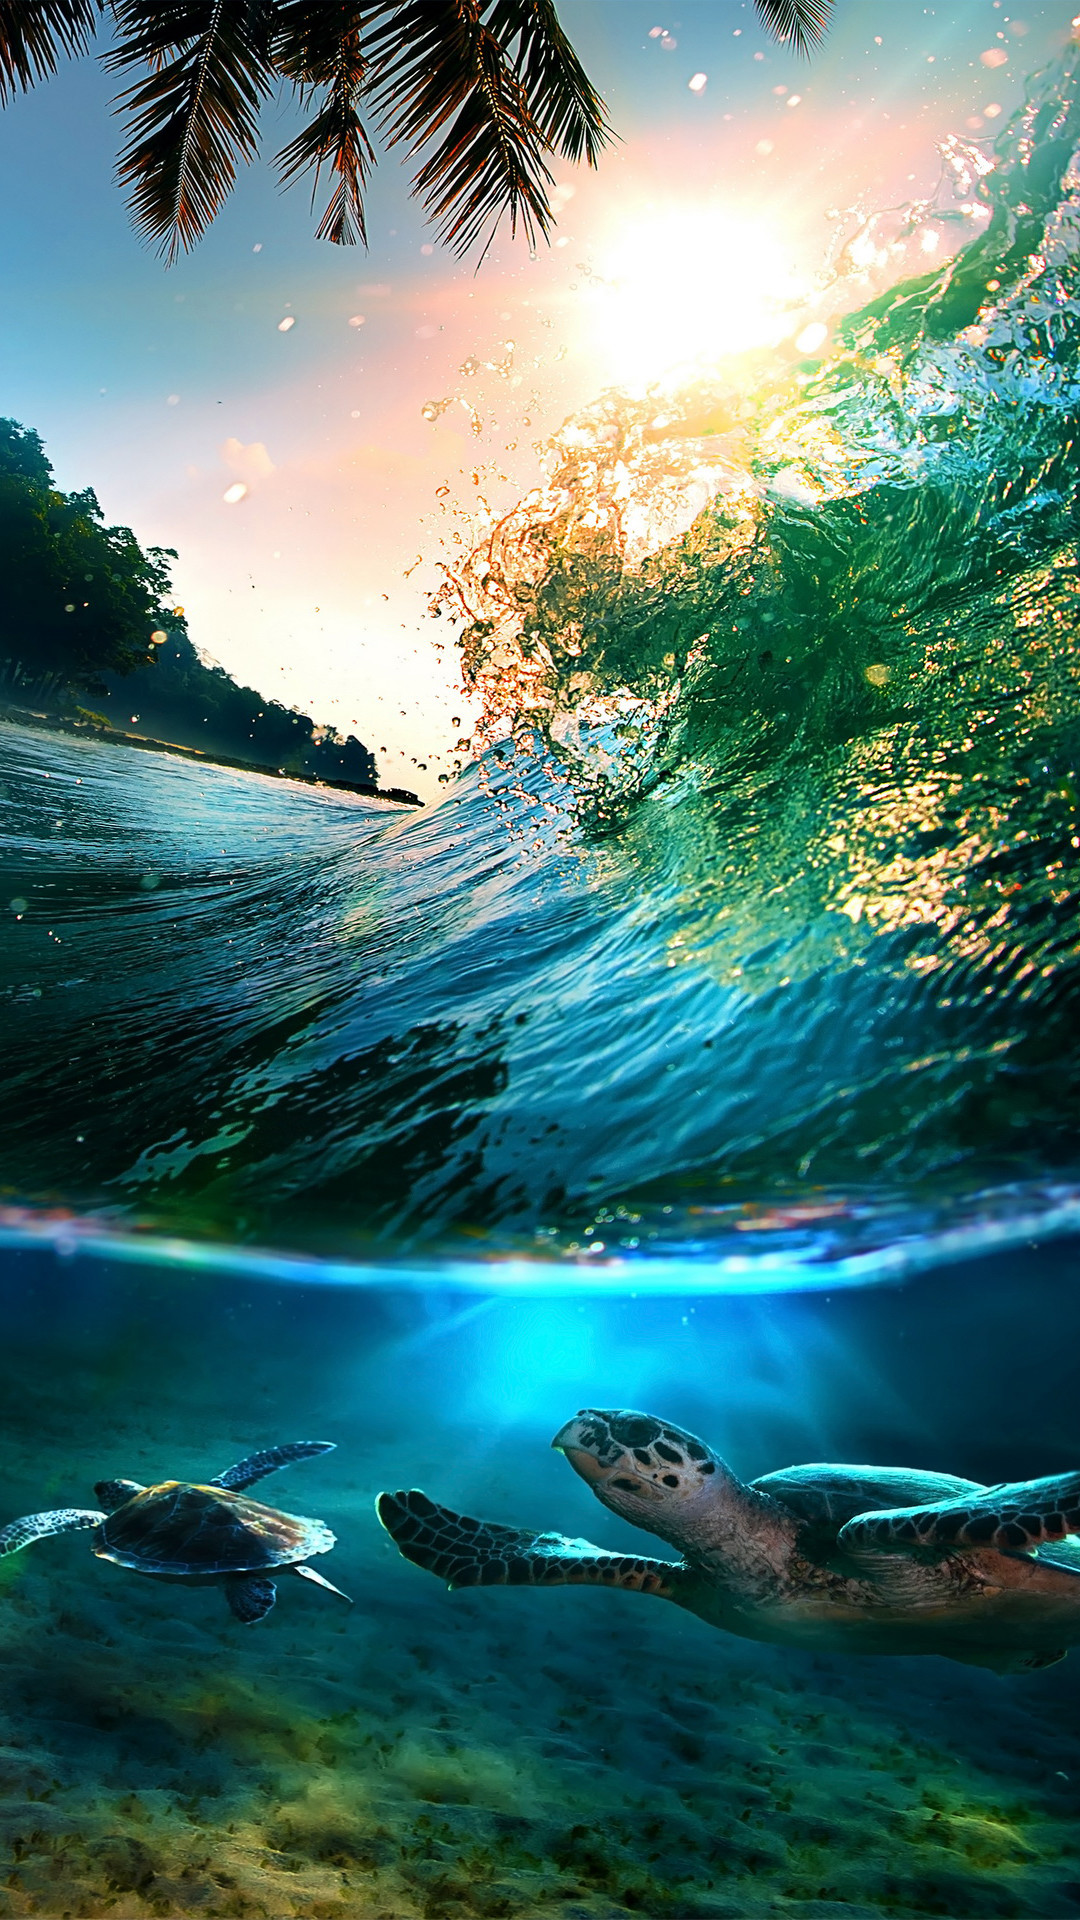 Tropical Sea Island Turtles – High quality htc one wallpapers and abstract  backgrounds designed by the best and creative artists in the world.